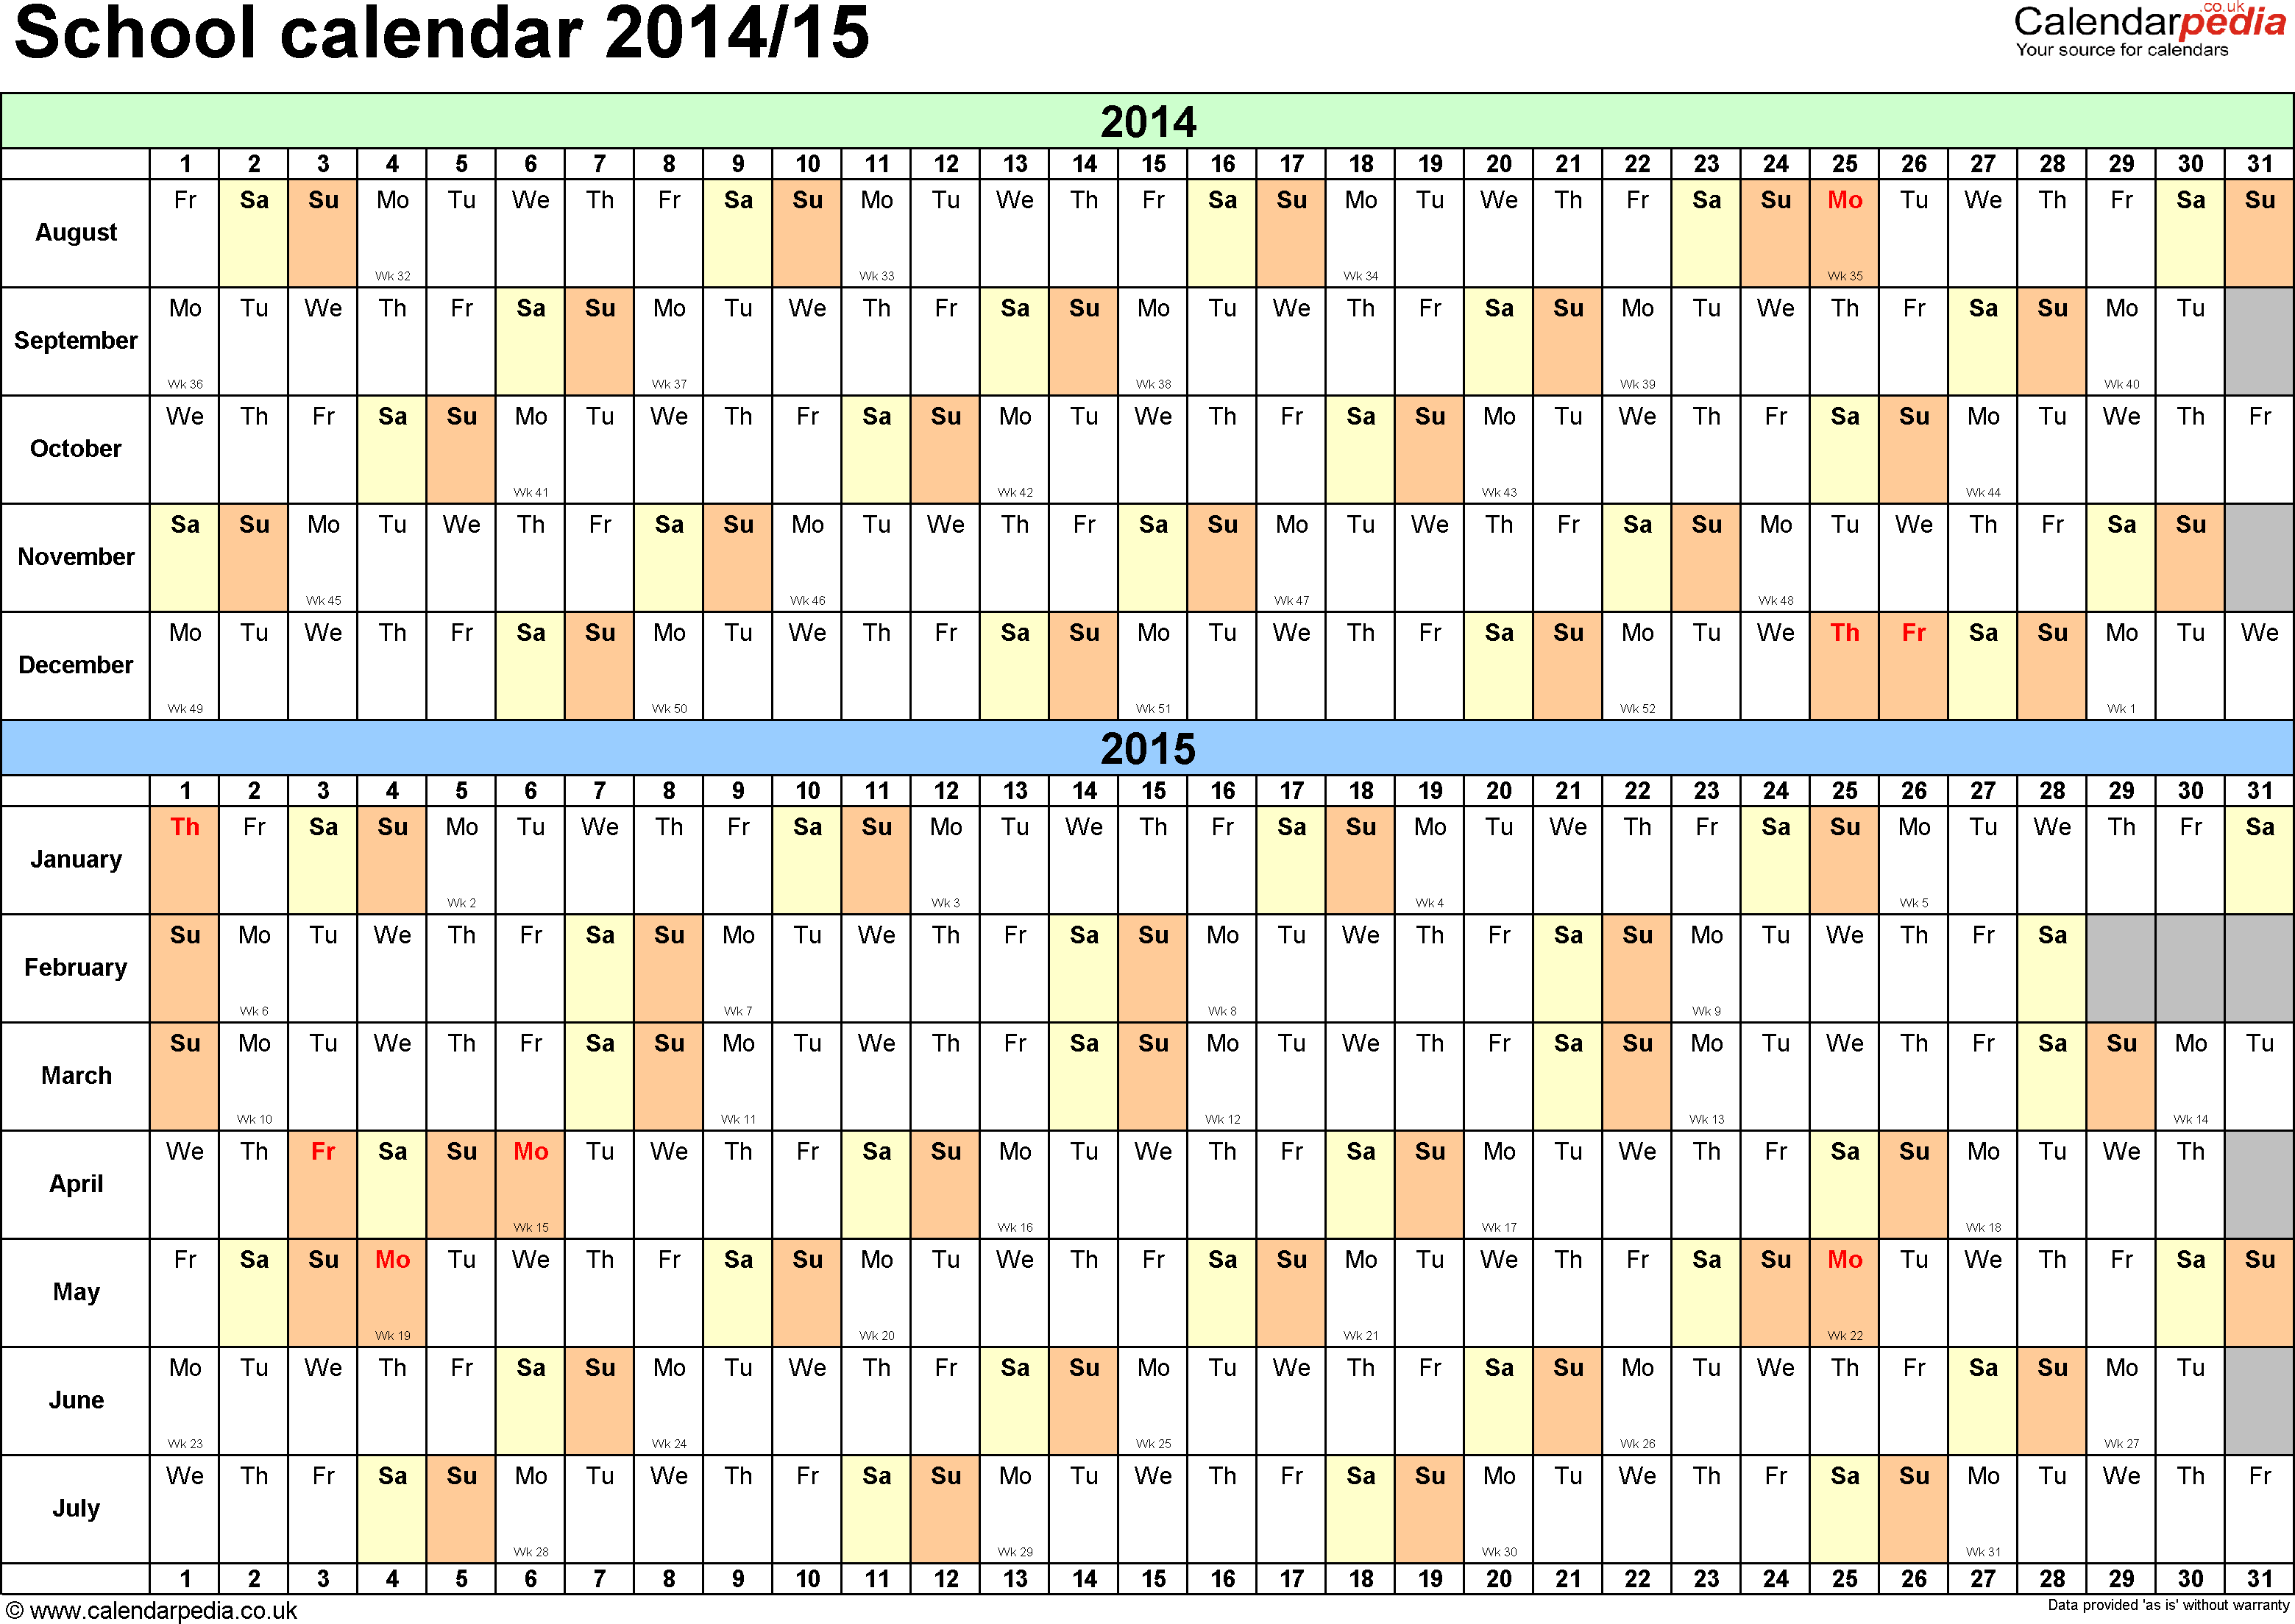 Template 2: School year calendars 2014/15 as Excel template, landscape orientation, A4, 1 page, months horizontally, days vertically, with UK bank holidays and week numbers